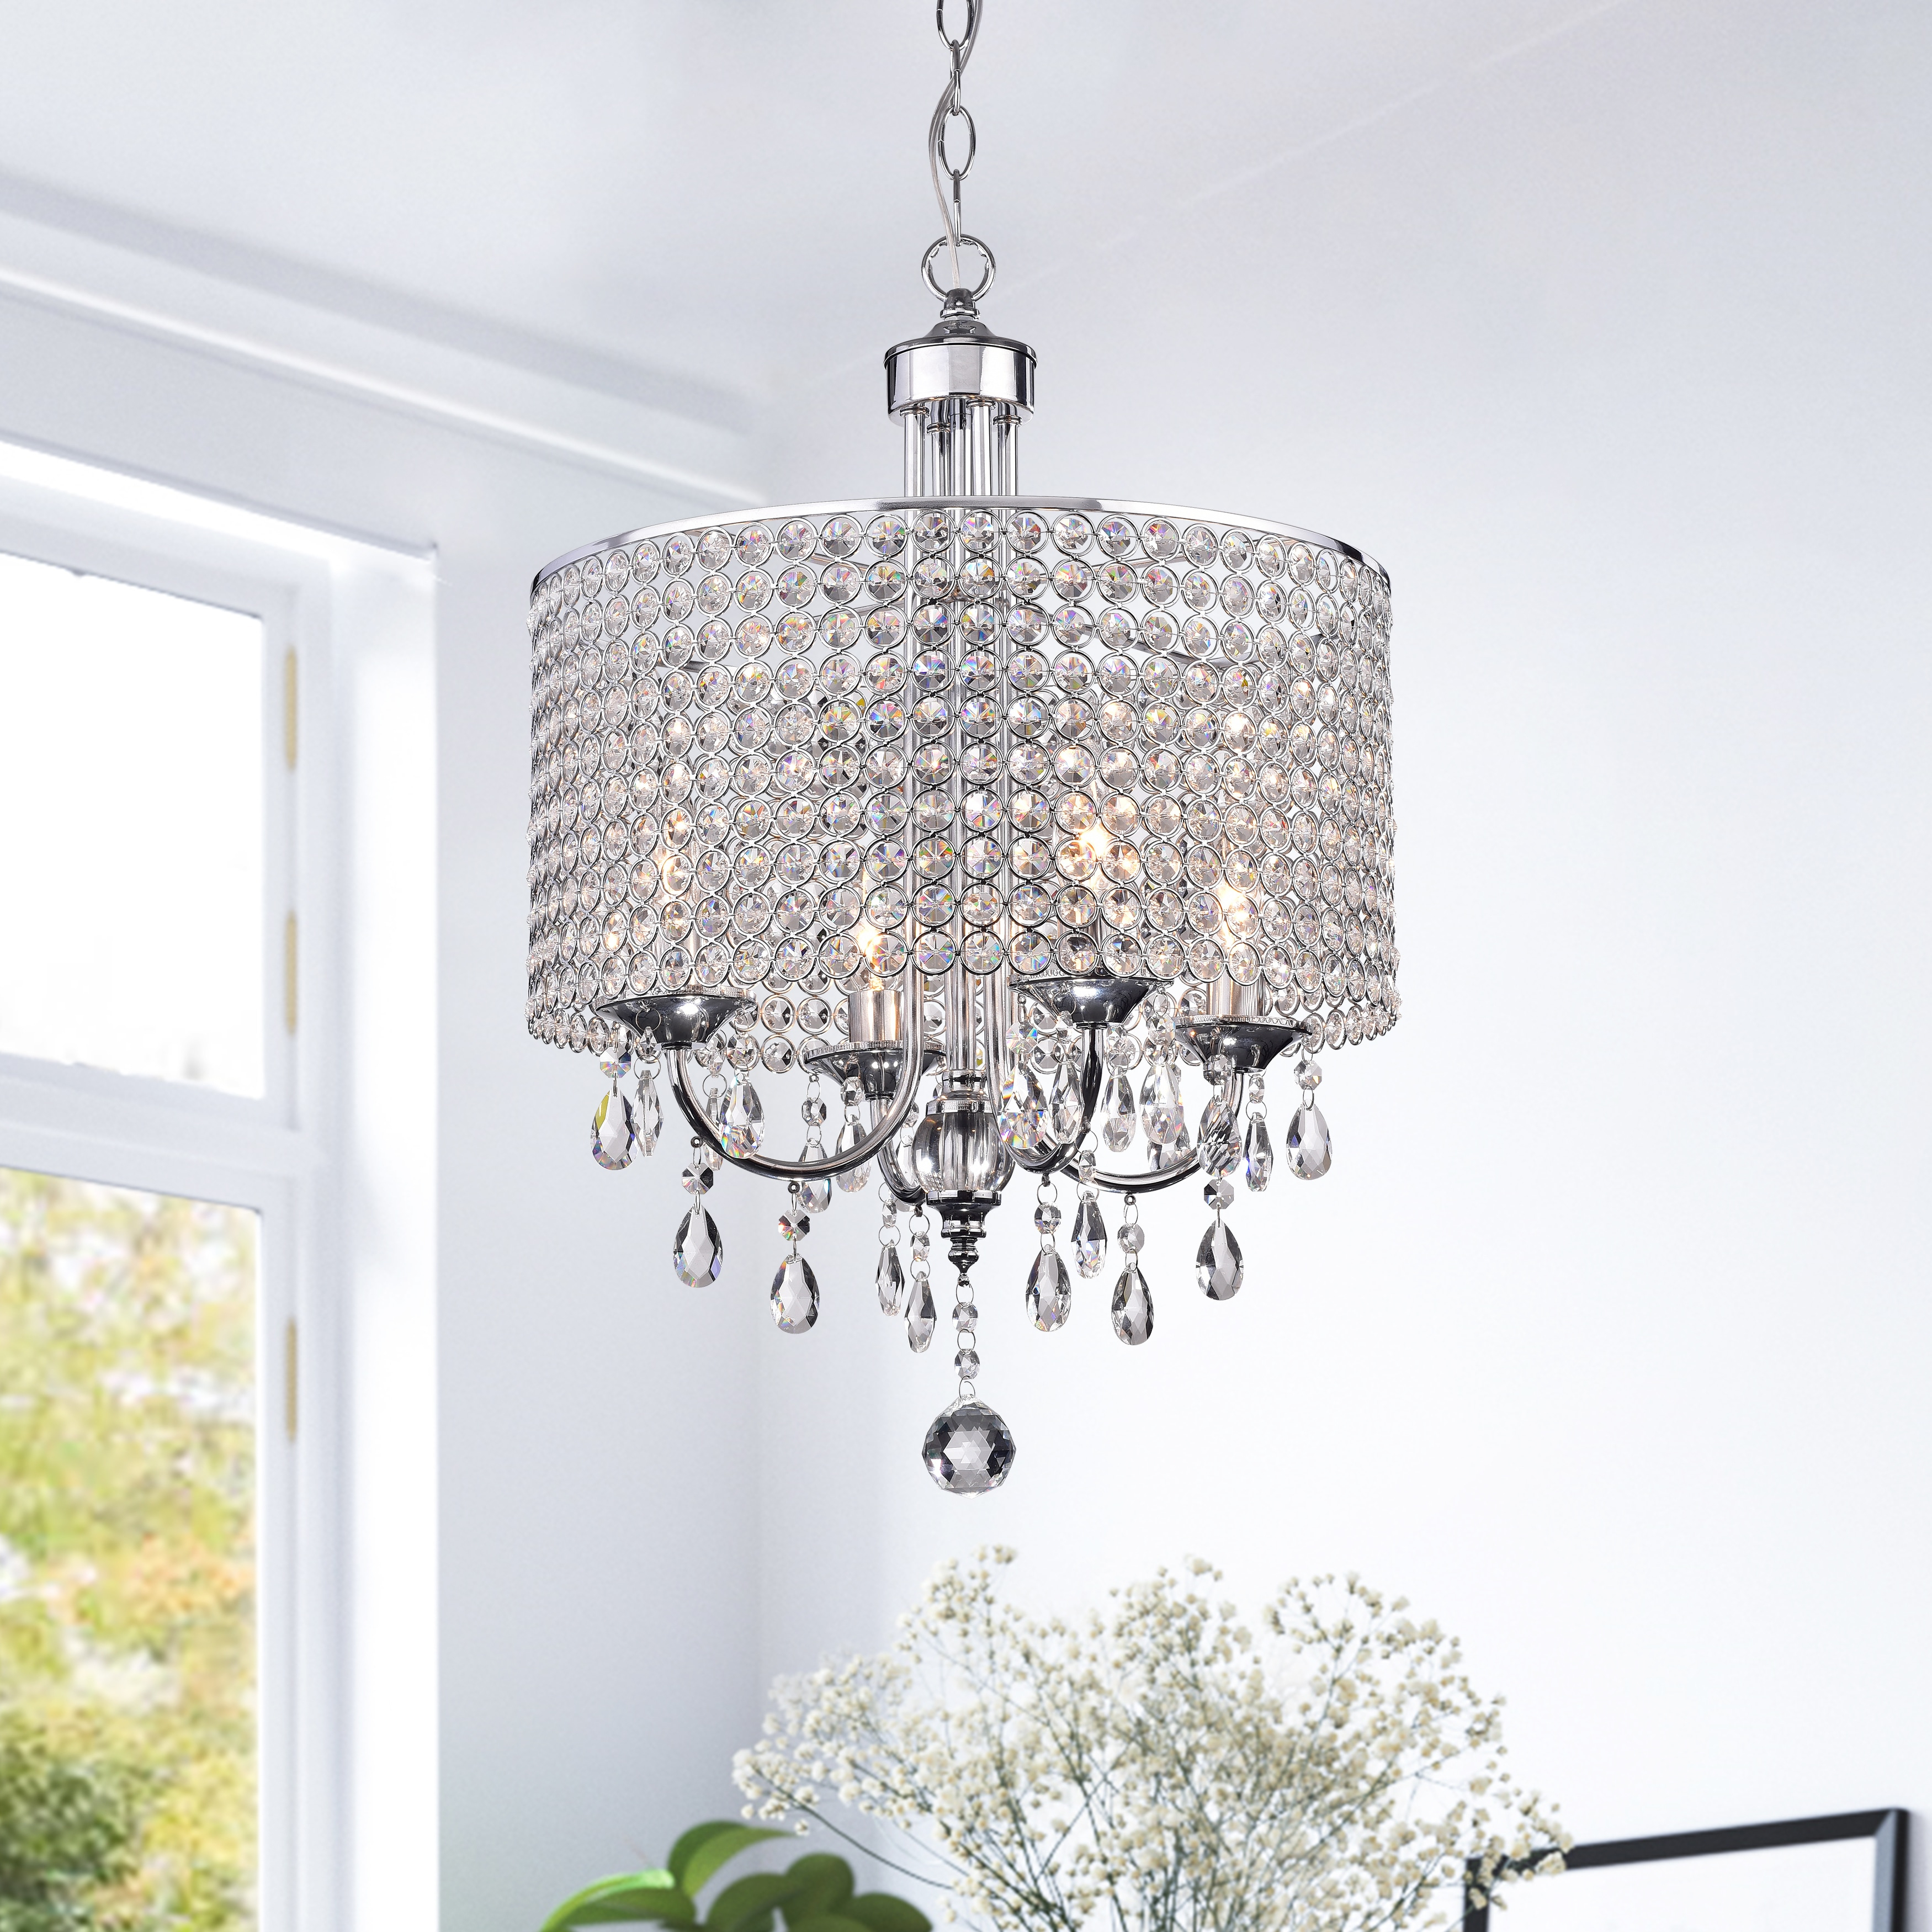 Silver Orchid Taylor 4 Light Chrome Finish Crystal Intended For Albano 4 Light Crystal Chandeliers (Image 24 of 30)